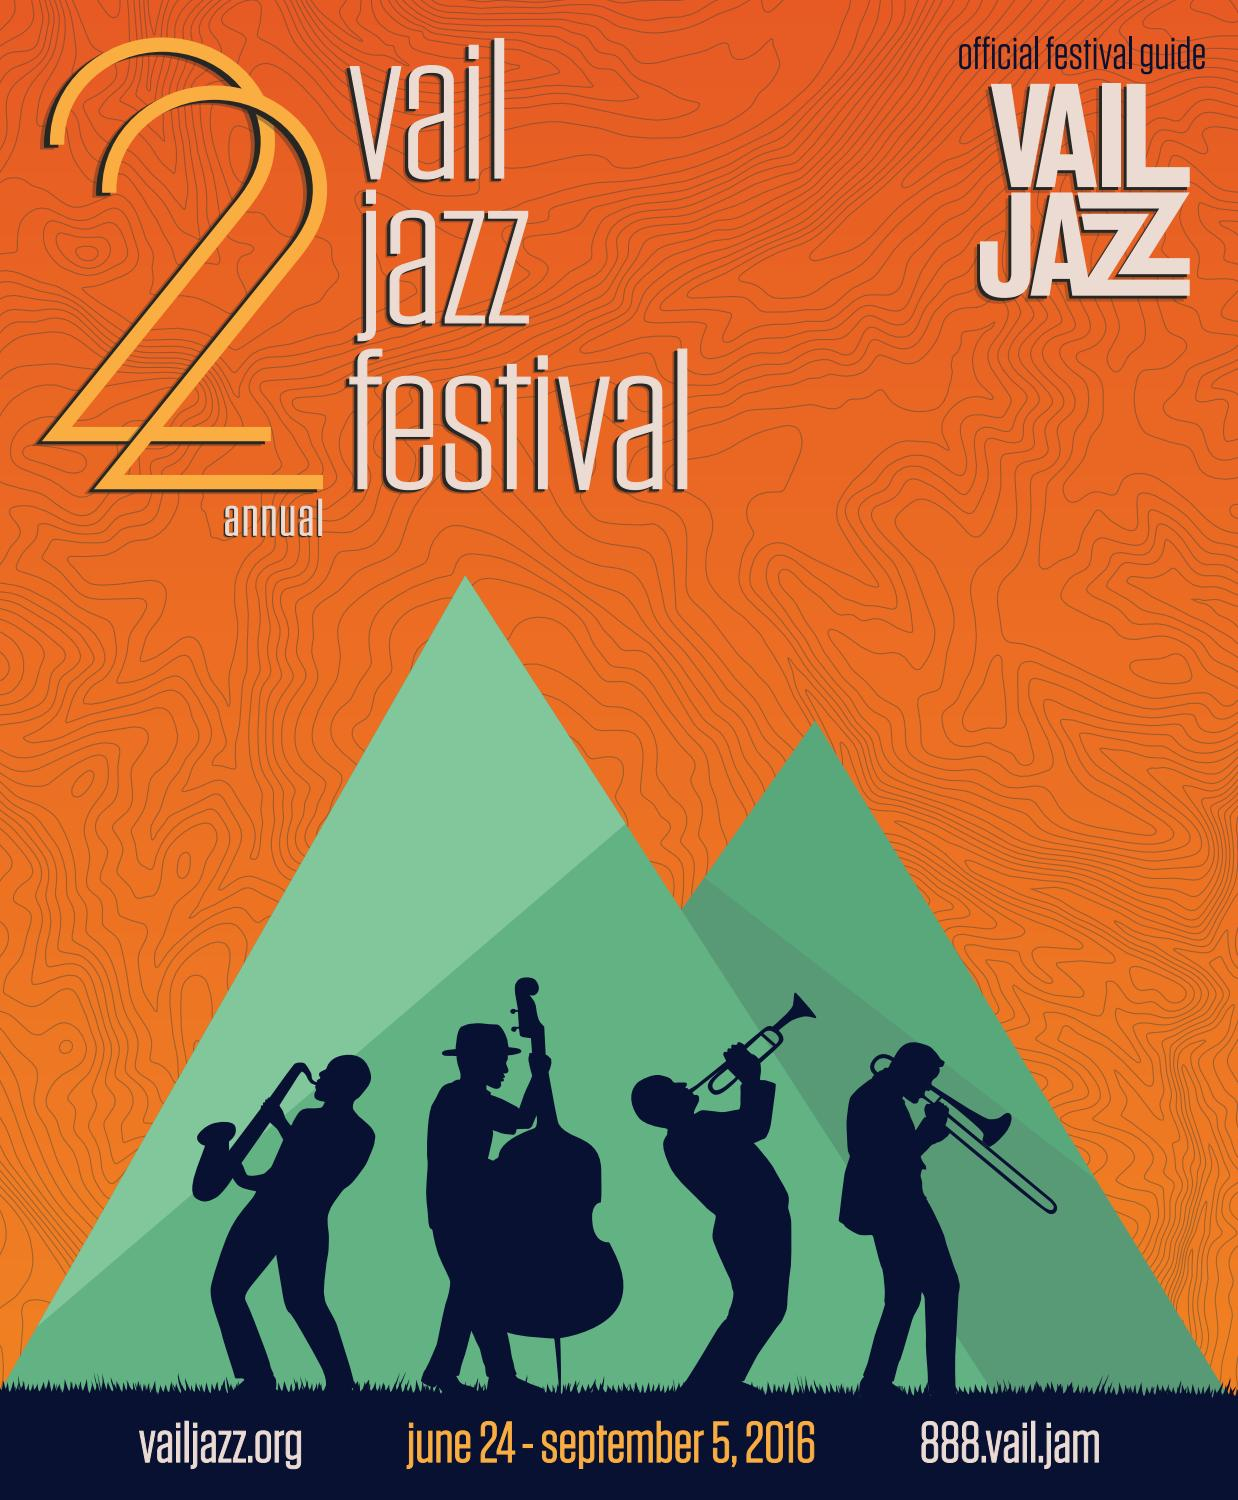 2016 Vail Jazz Festival Guide By Vail Jazz  Issuu pertaining to Vail Academy And High School Calendar